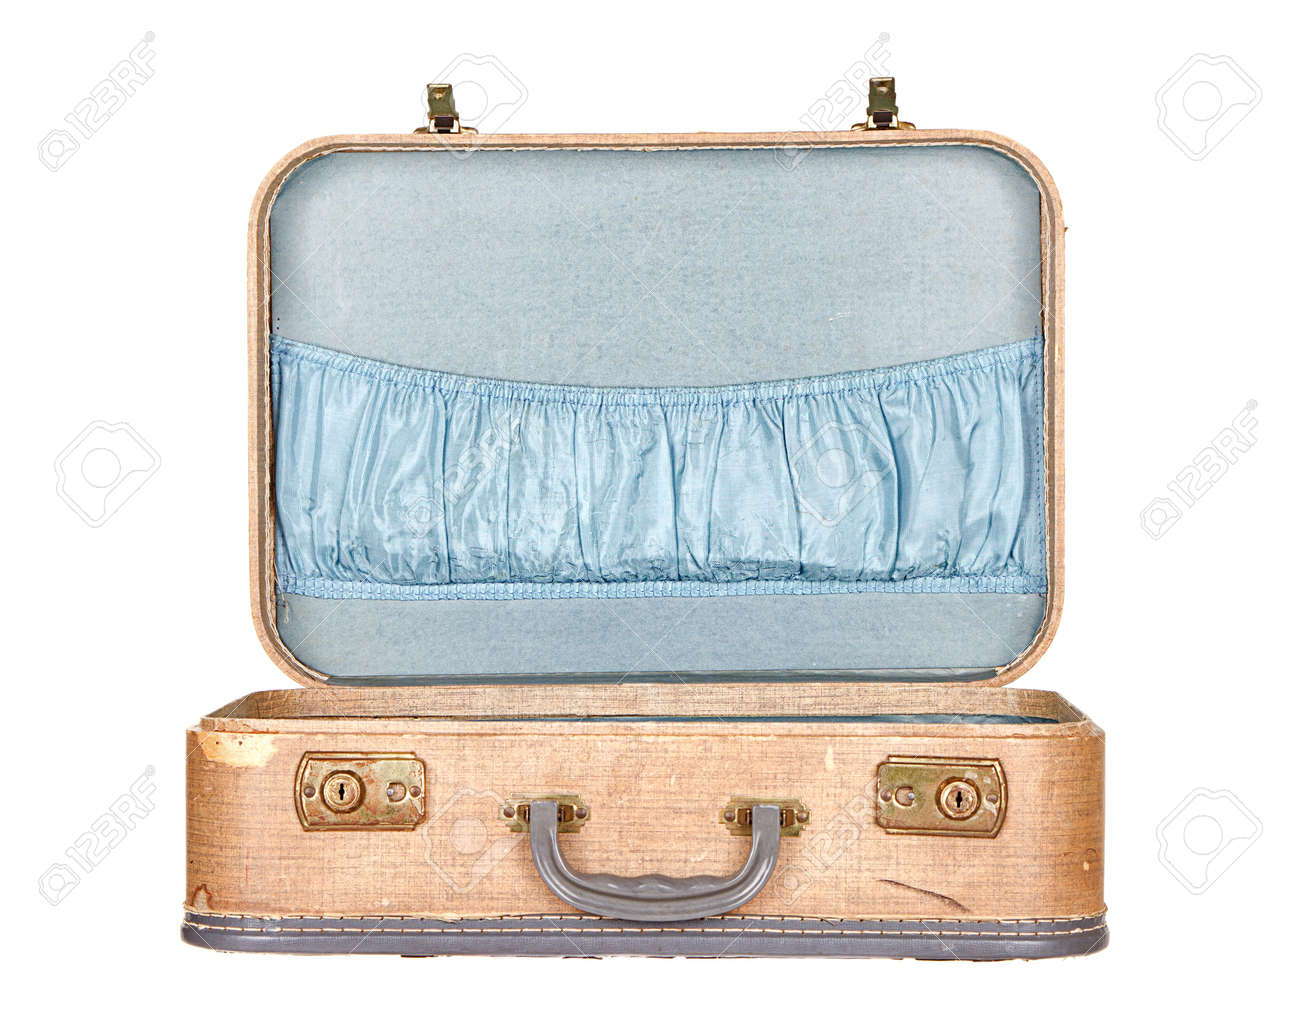 Vintage Suitcase Or Luggage Open, Isolated On White Stock Photo ...